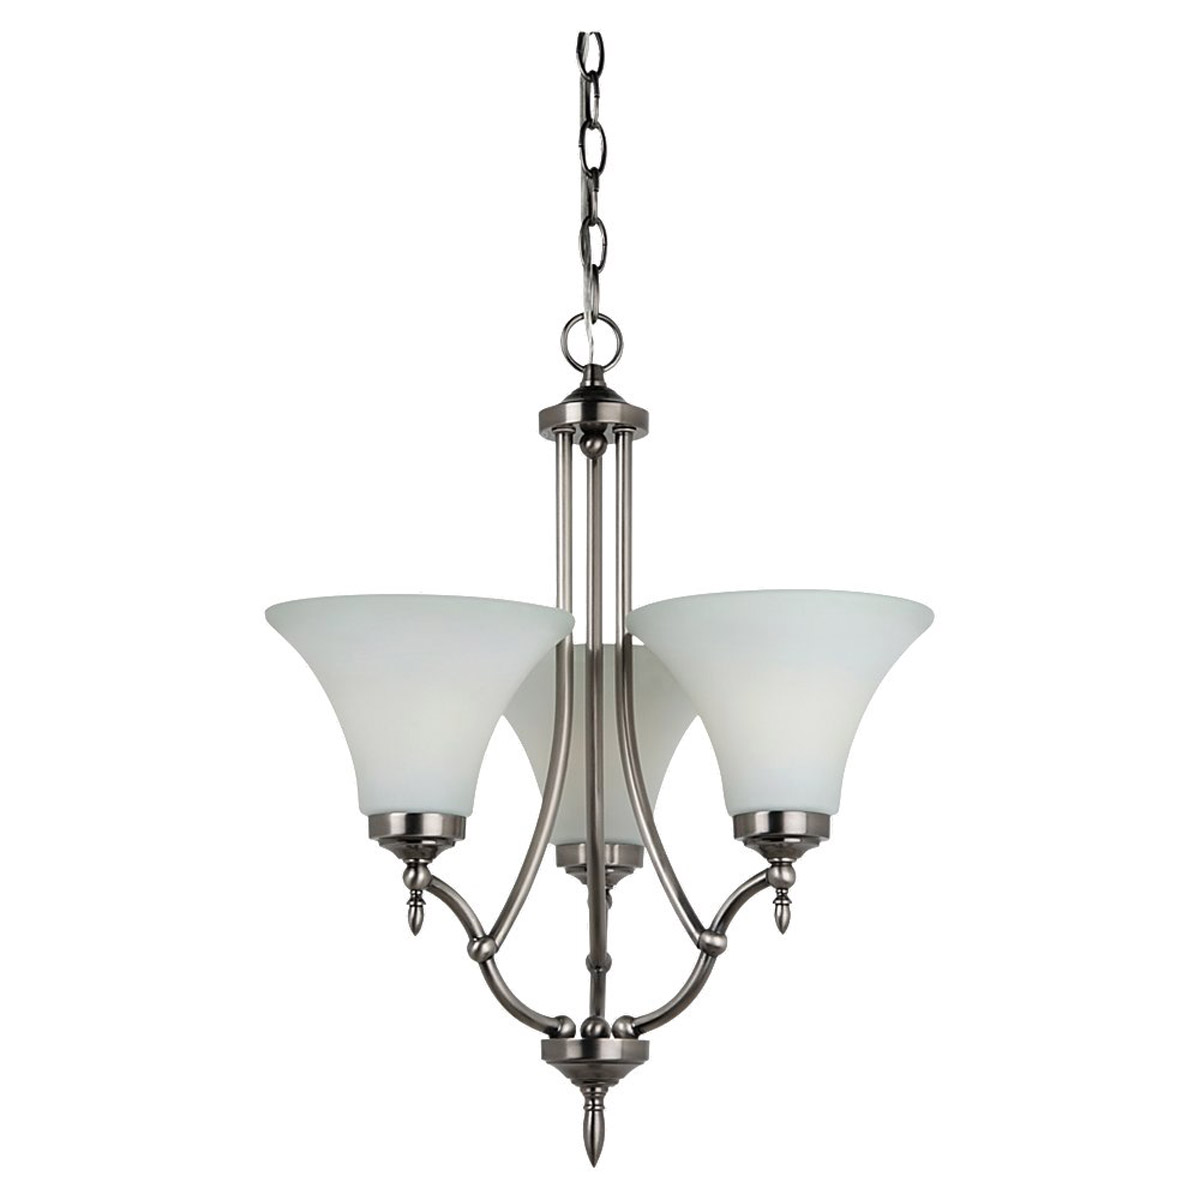 Sea Gull Lighting Montreal 3 Light Chandelier in Antique Brushed Nickel 31180-965